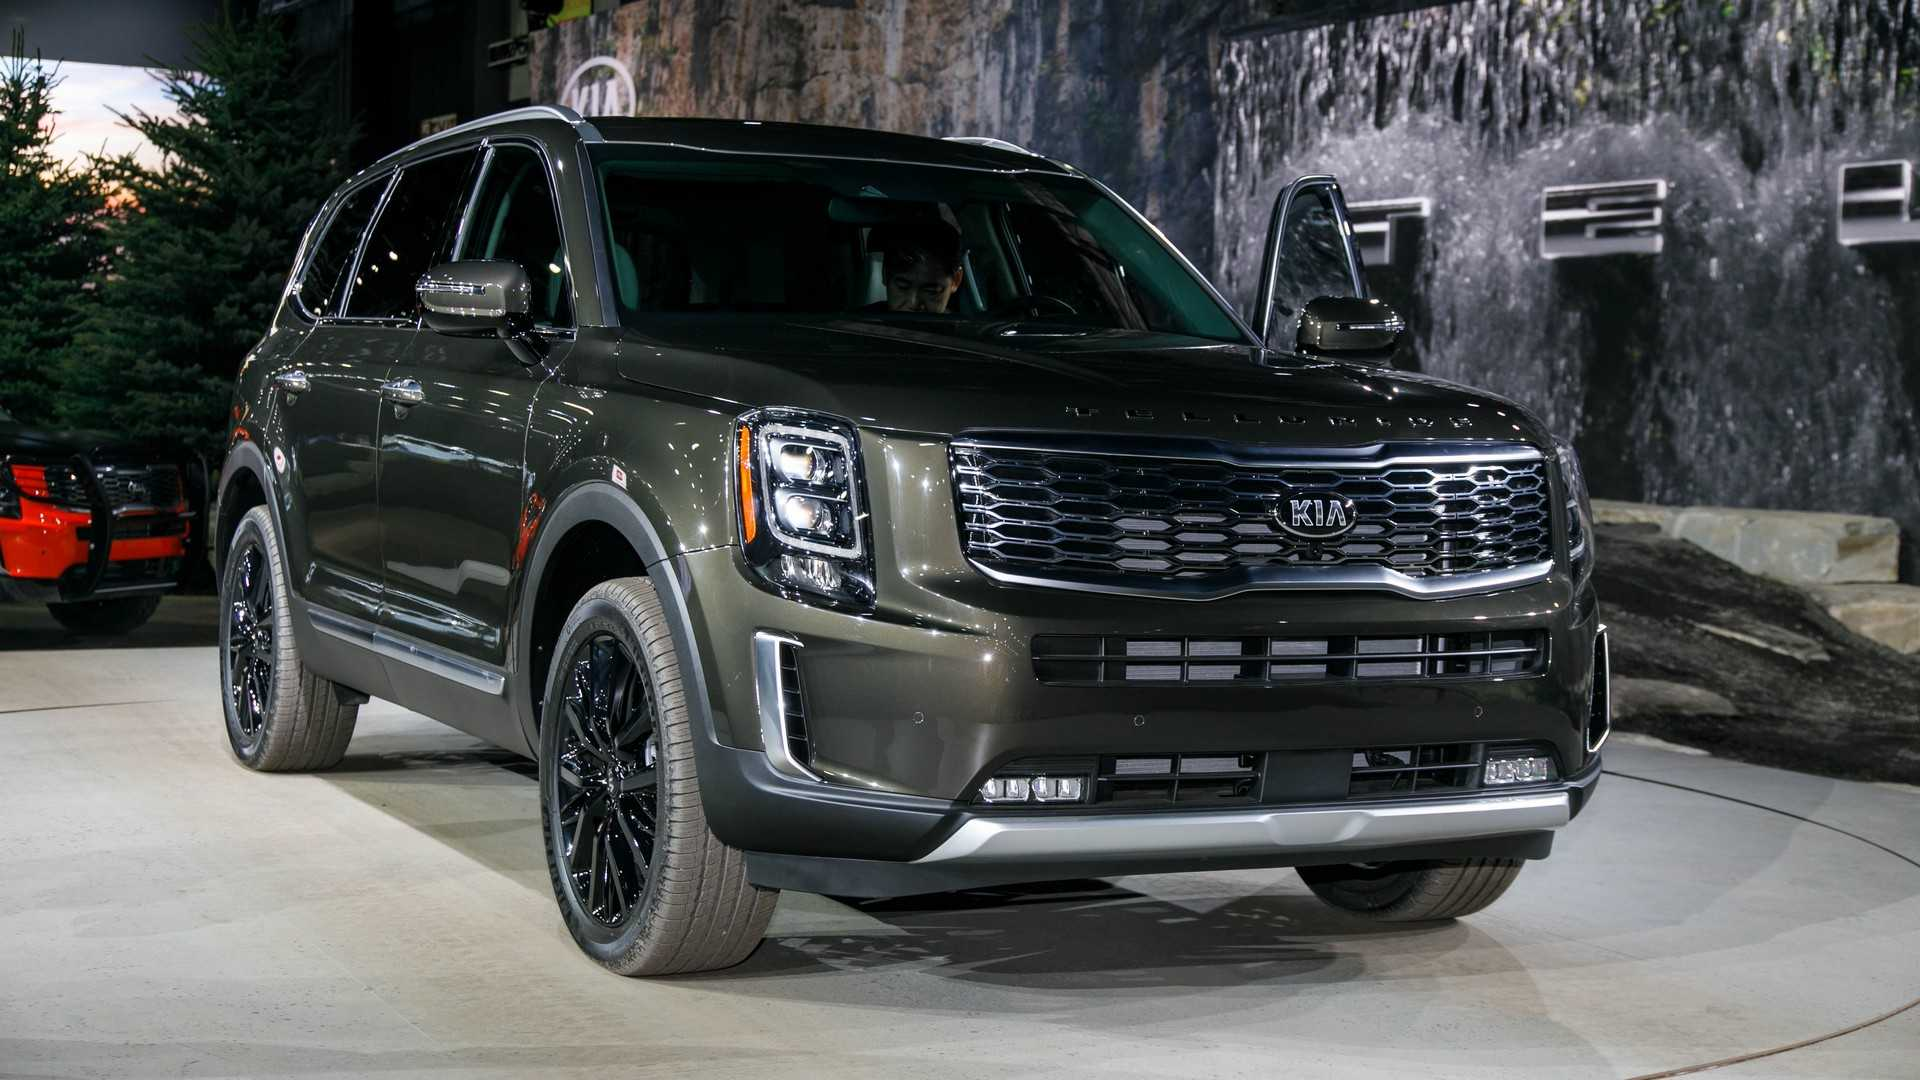 82 New 2020 Kia Telluride Exterior Speed Test by 2020 Kia Telluride Exterior